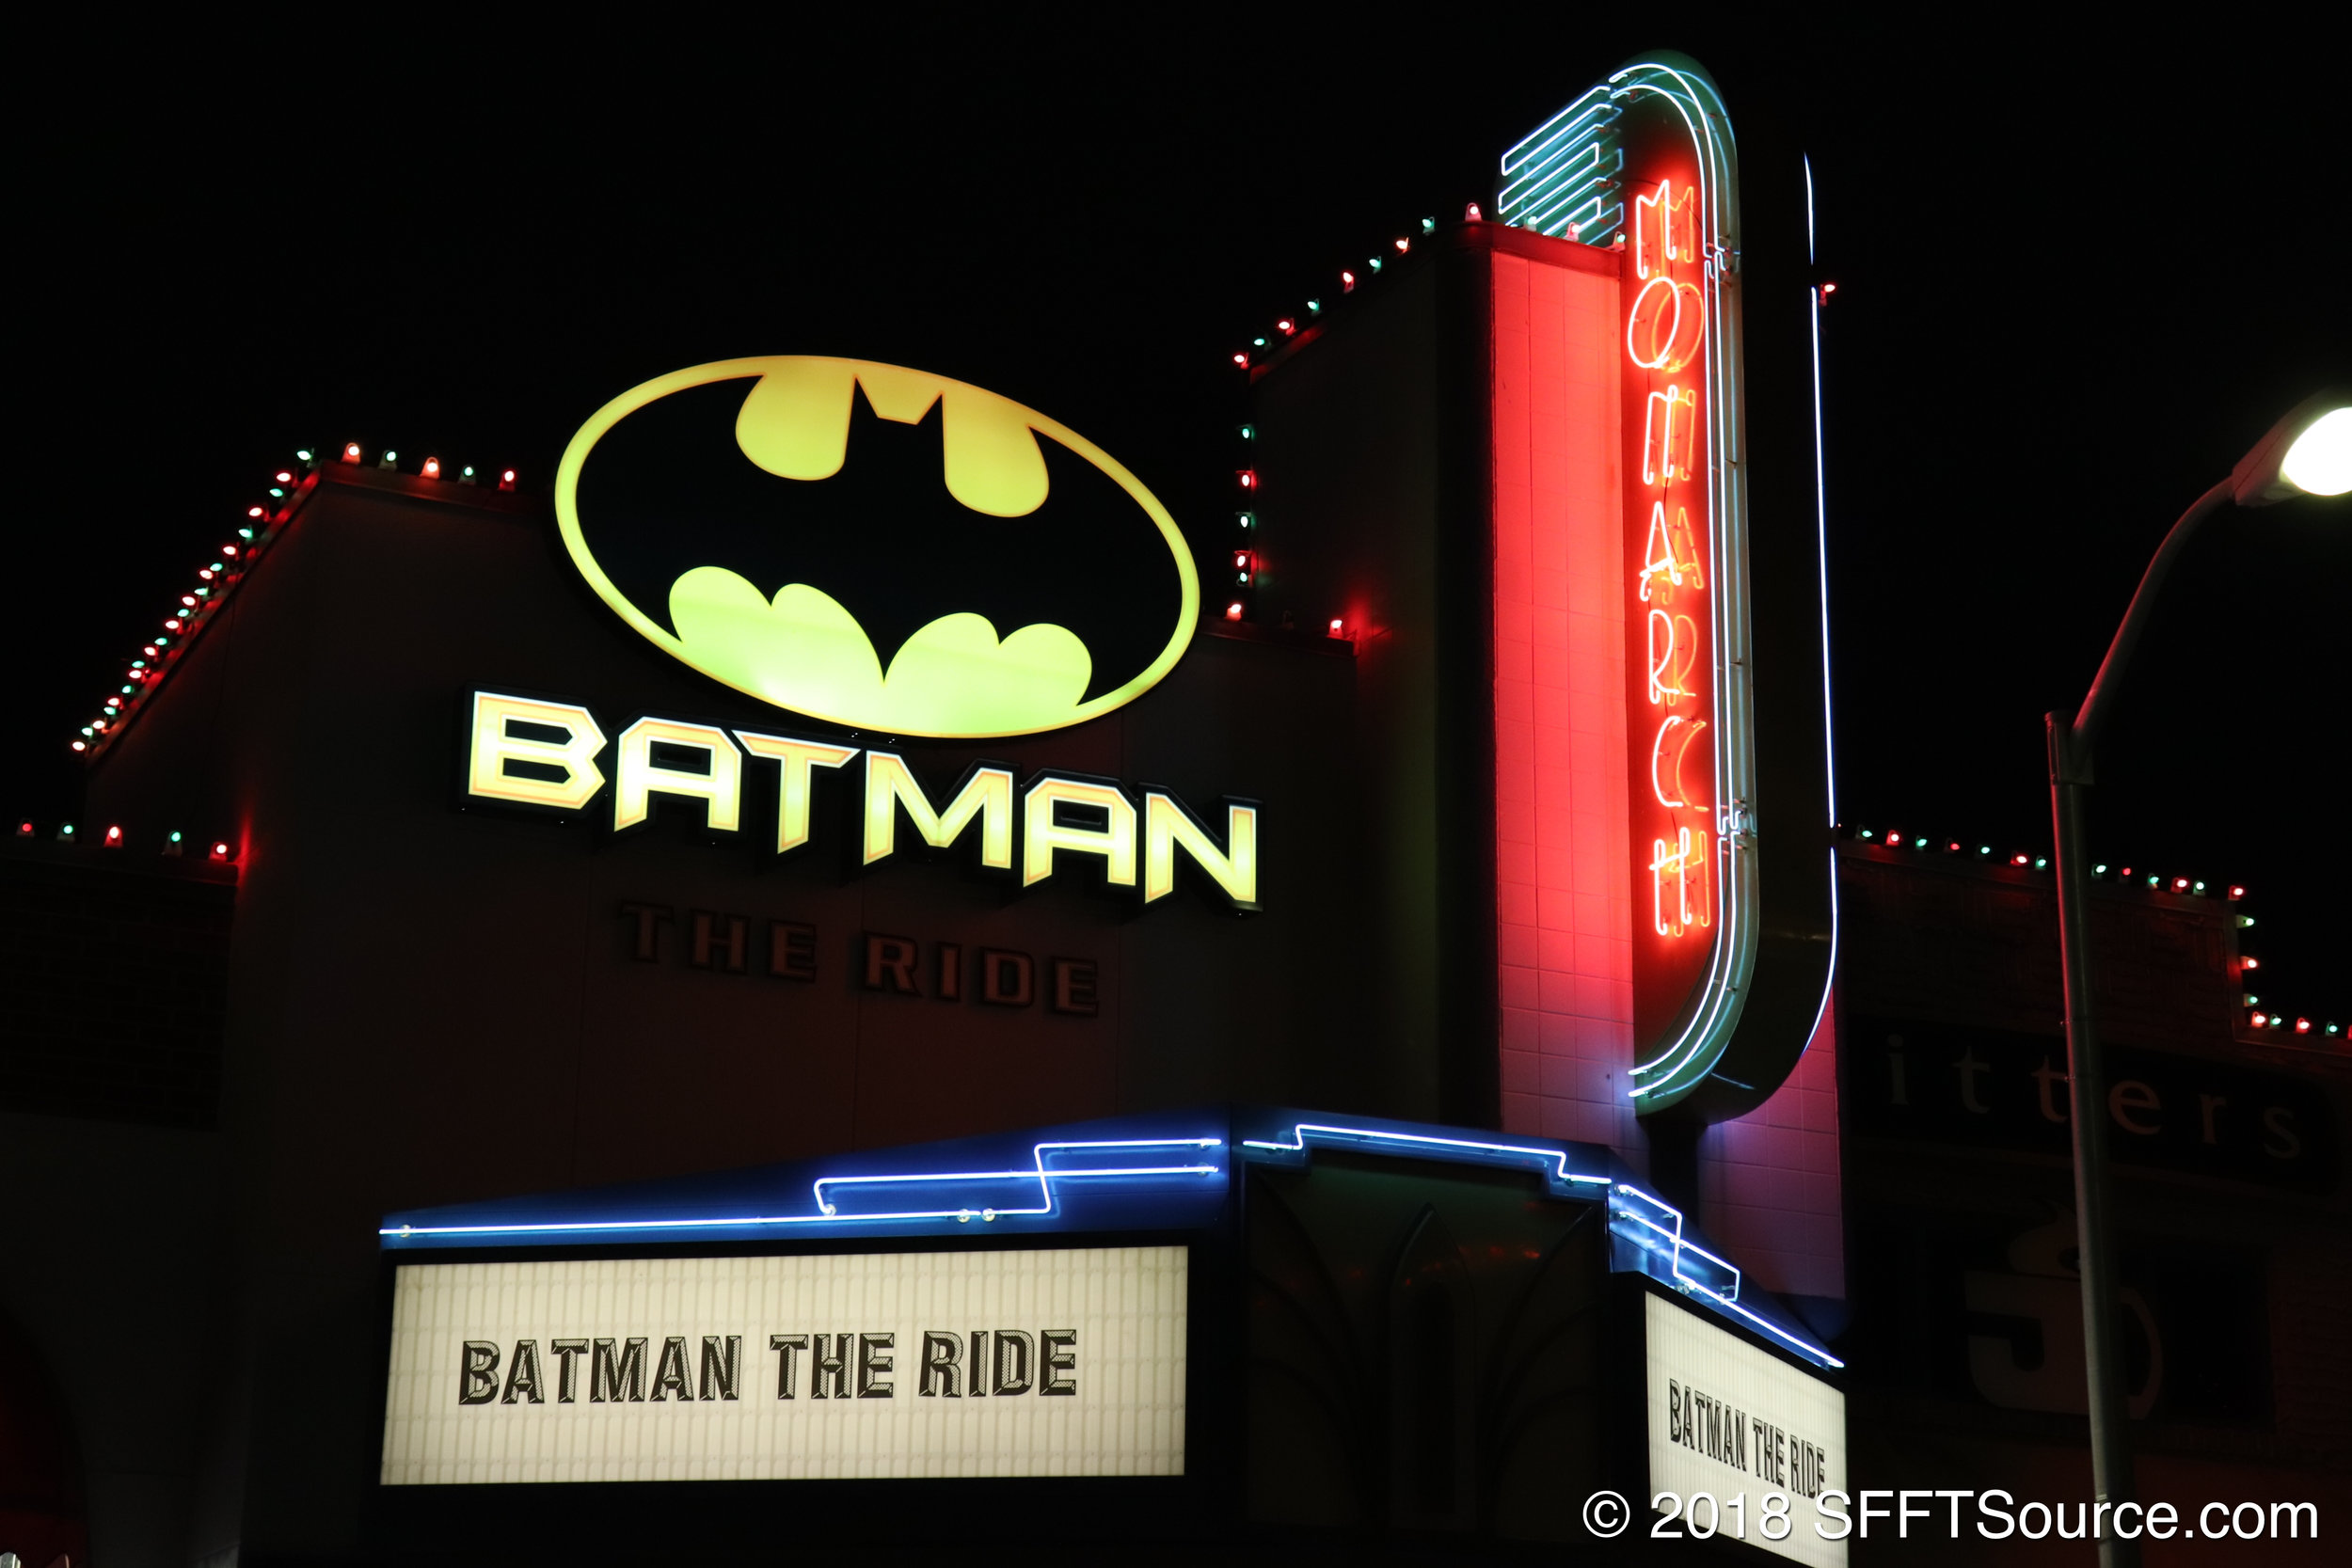 A look at the entrance of Batman: The Ride in the evening.